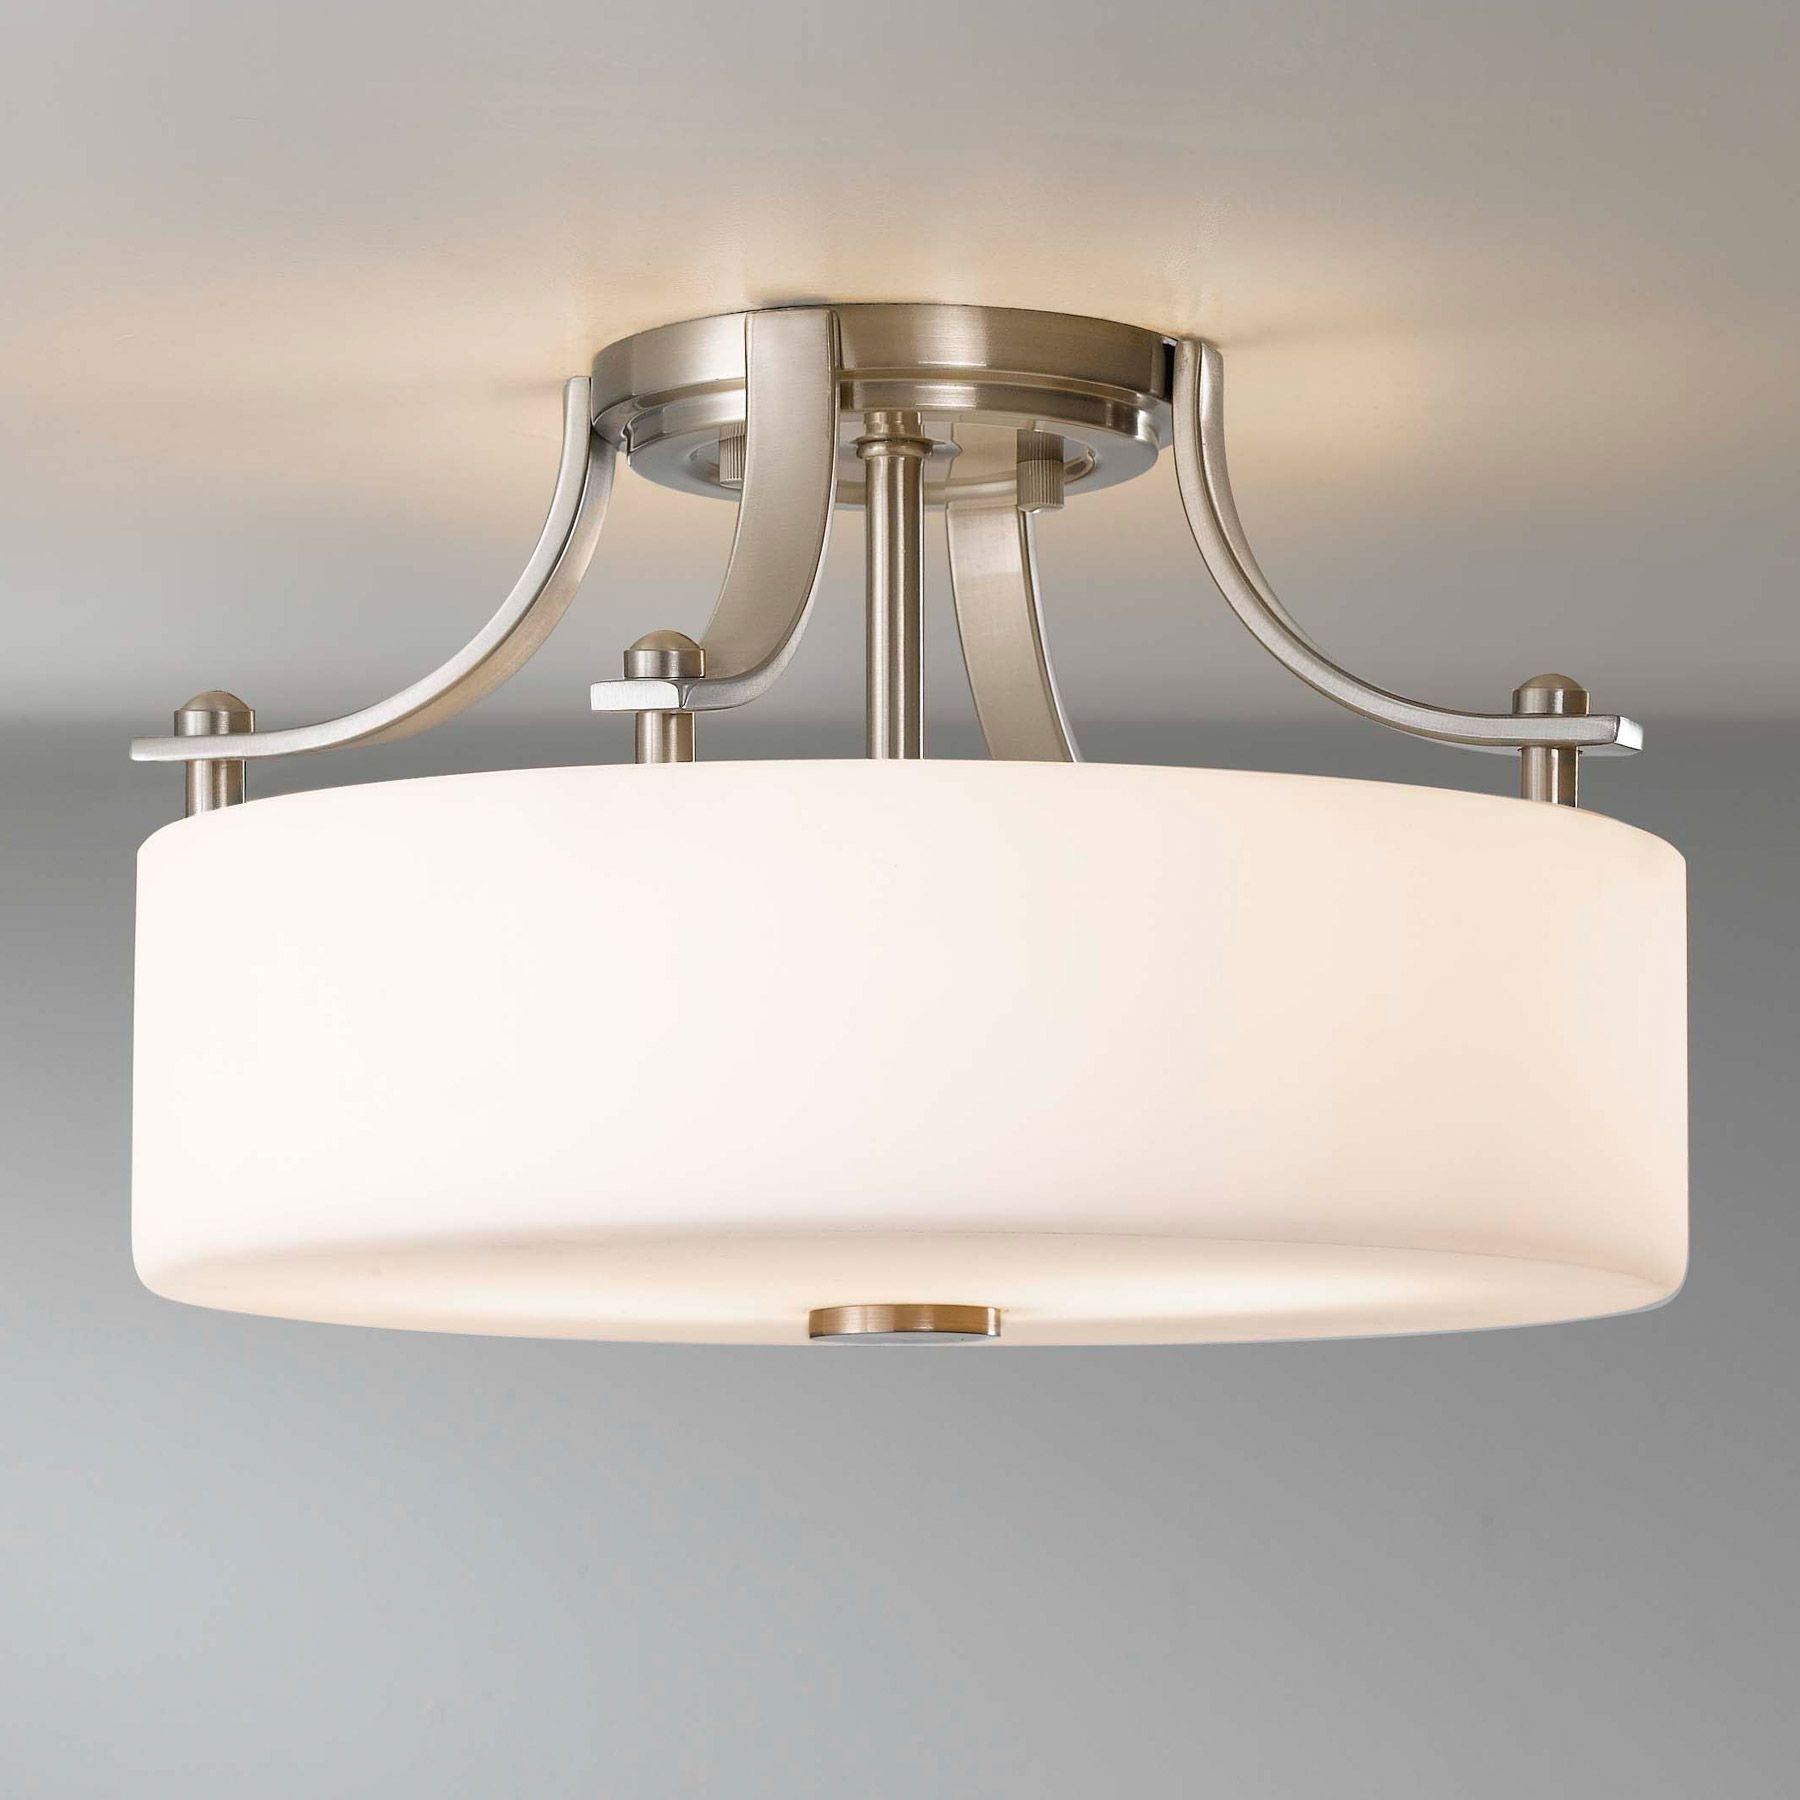 Flush Mount Kitchen Lights White Flushmount Light Fixture Flush Mount Ceiling Light